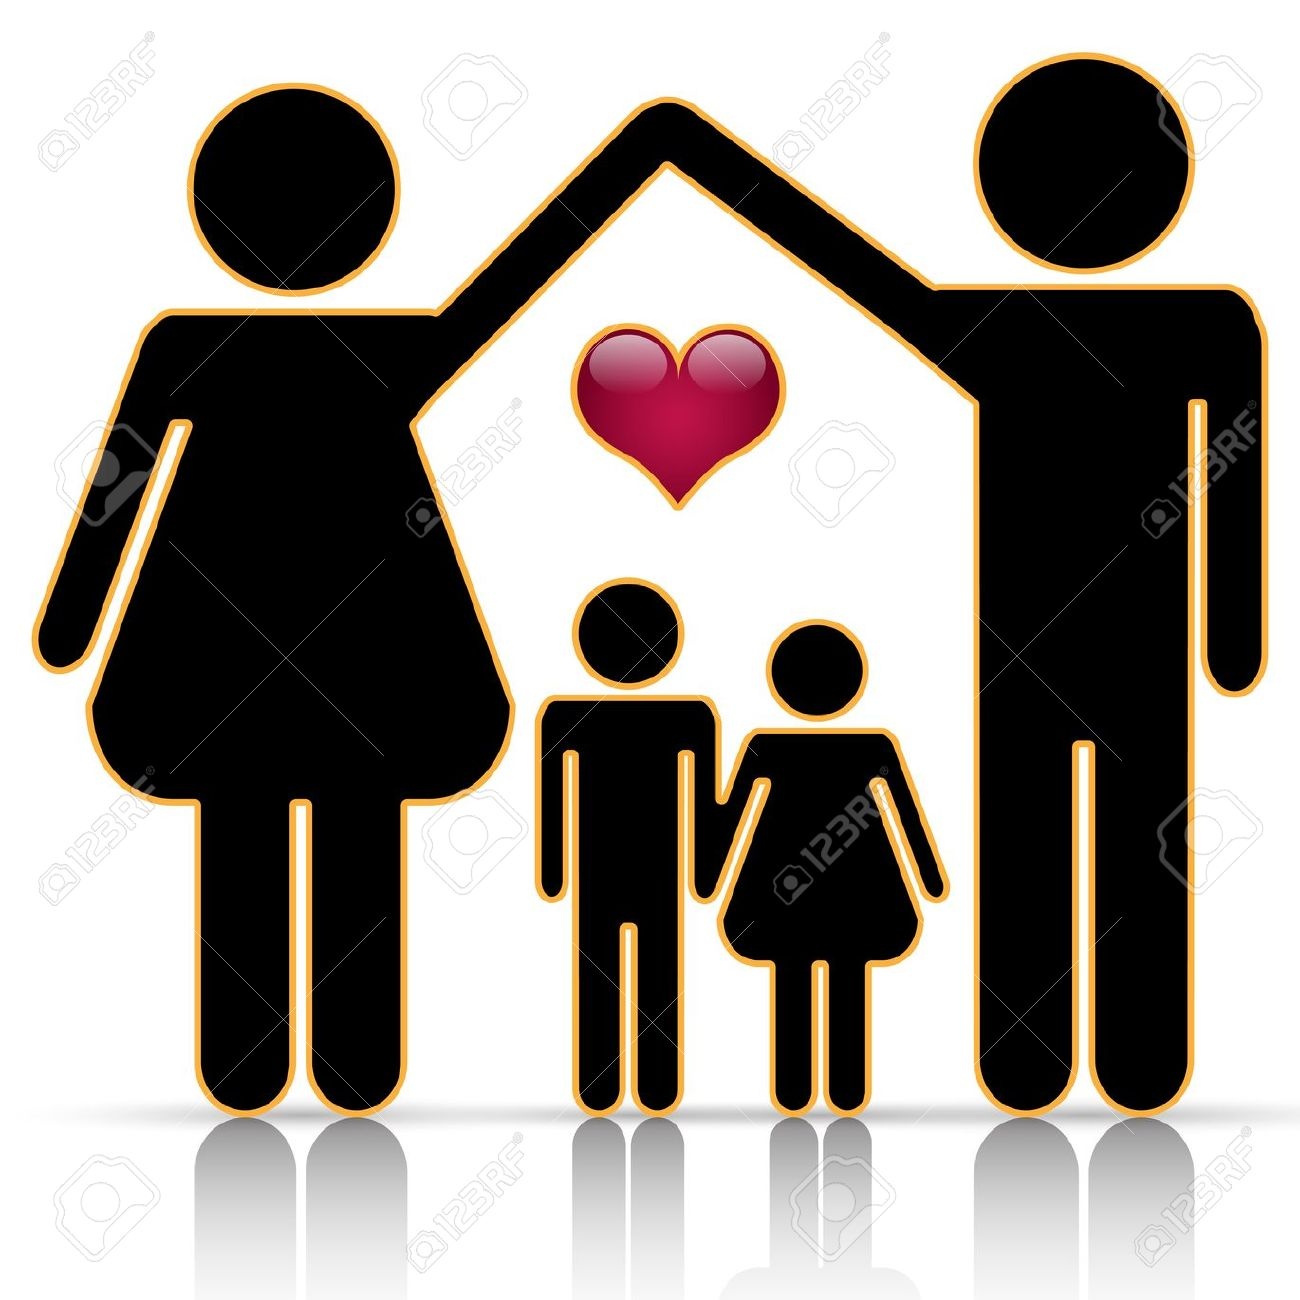 Son clipart family 6. Happy father mother grandparents